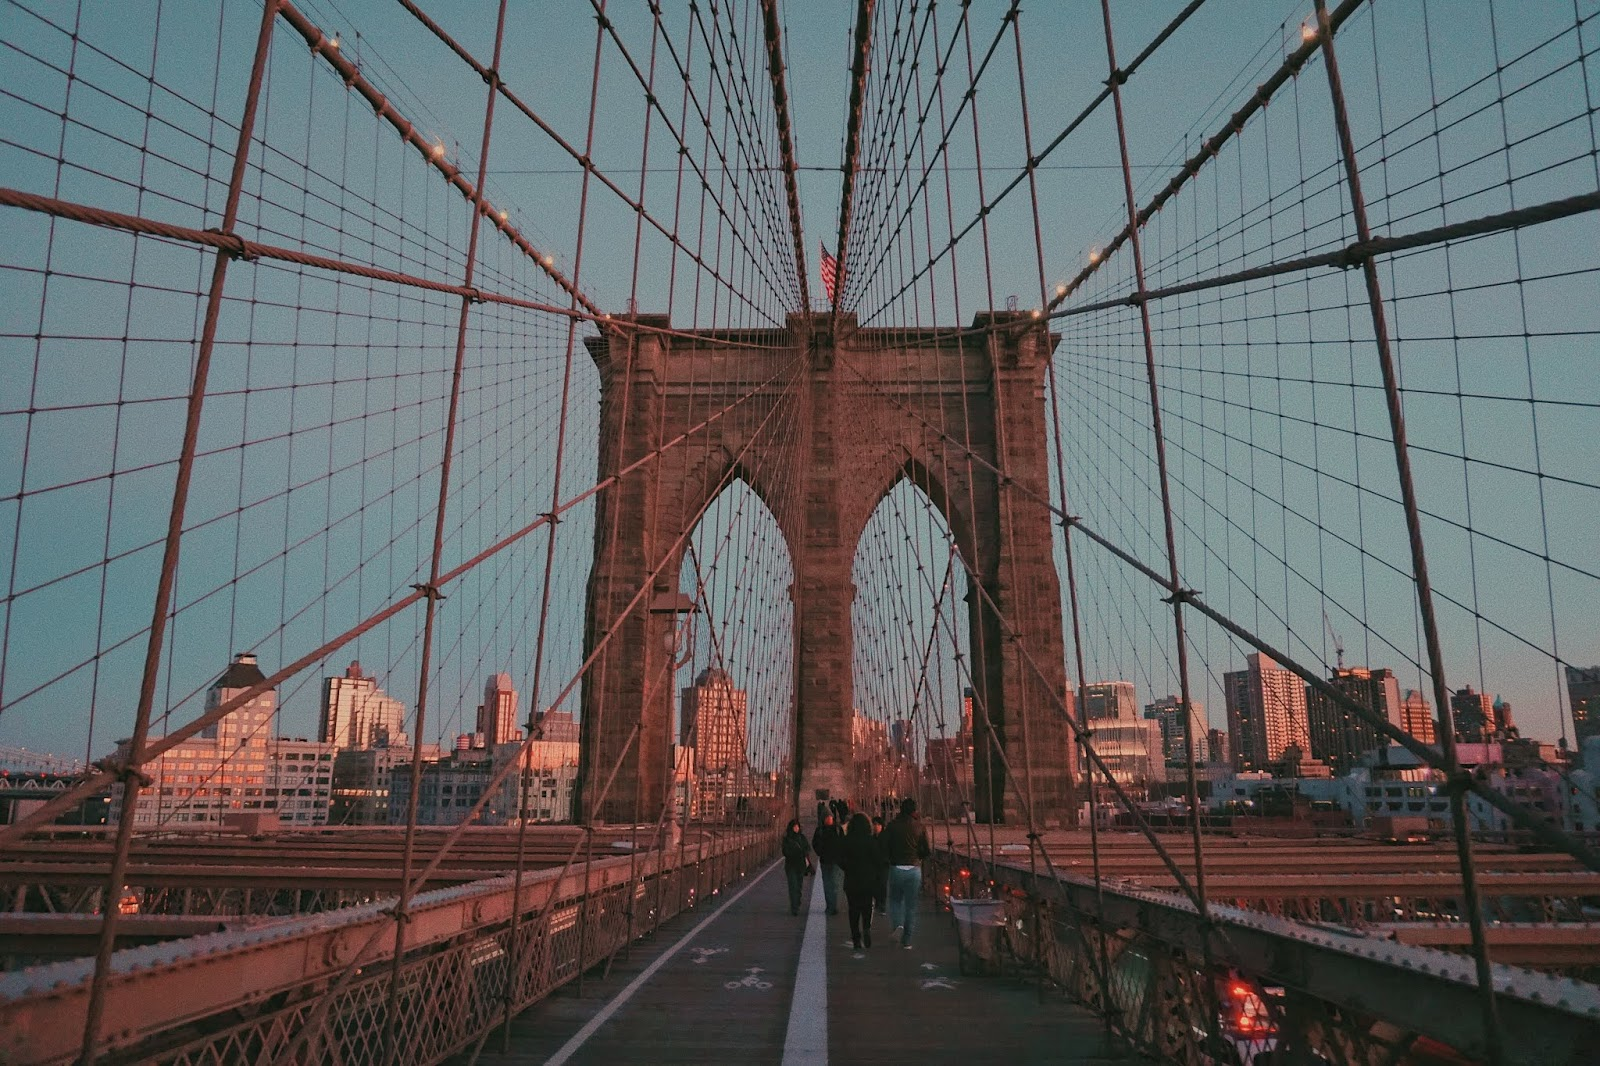 Best Instagram Spots in New York